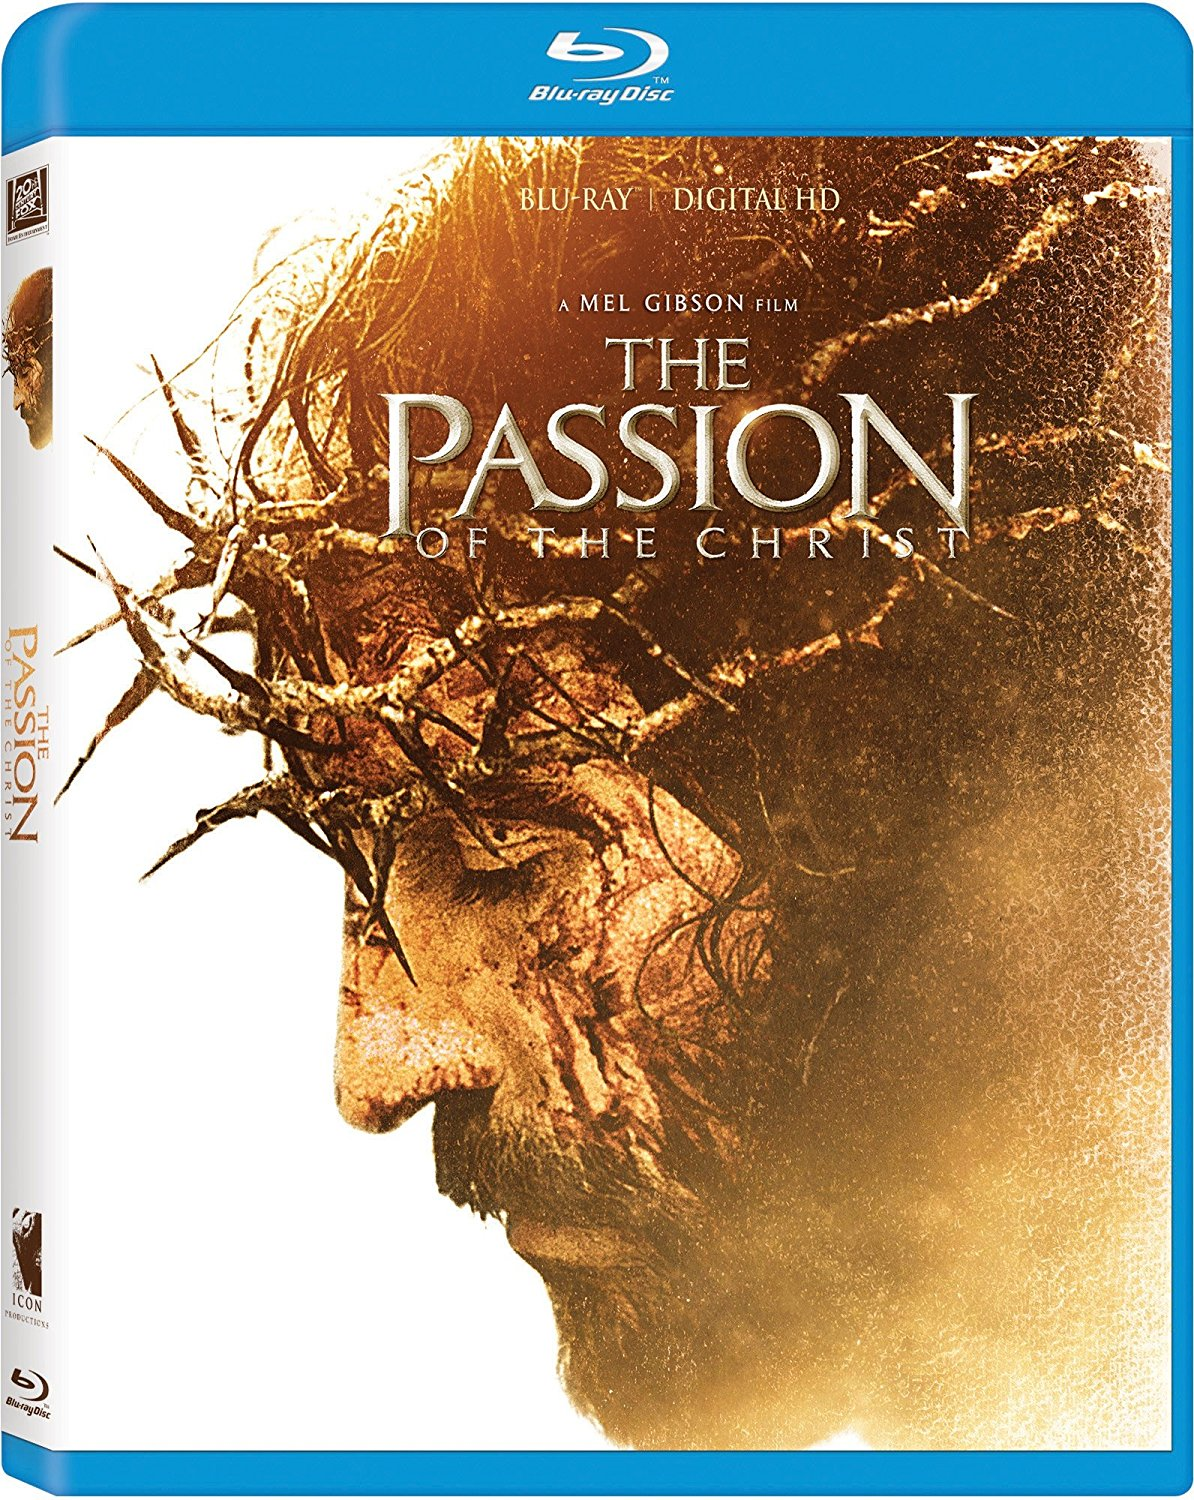 The Passion of the Christ is back -- and dubbed in English?